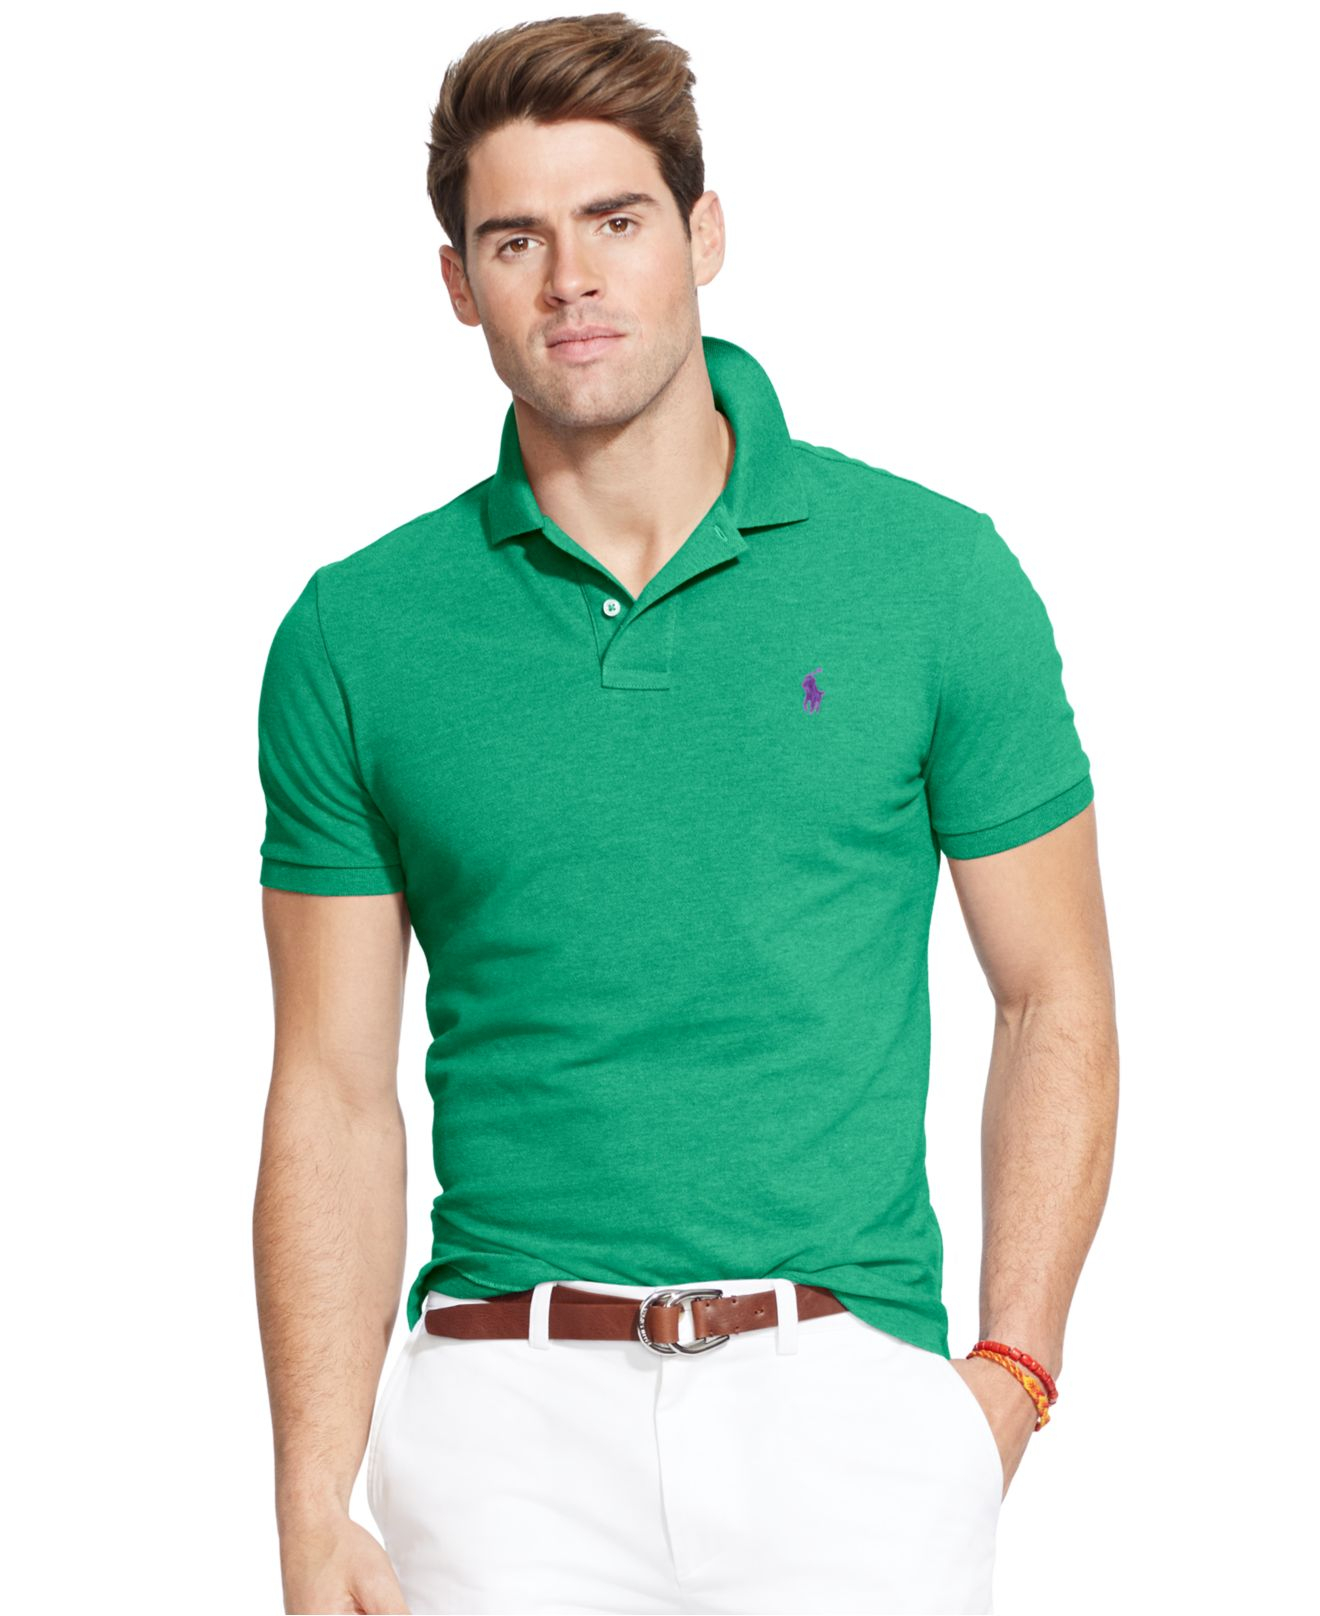 3249c134f2224 Lyst - Polo Ralph Lauren Custom-fit Mesh Polo Shirt in Green for Men